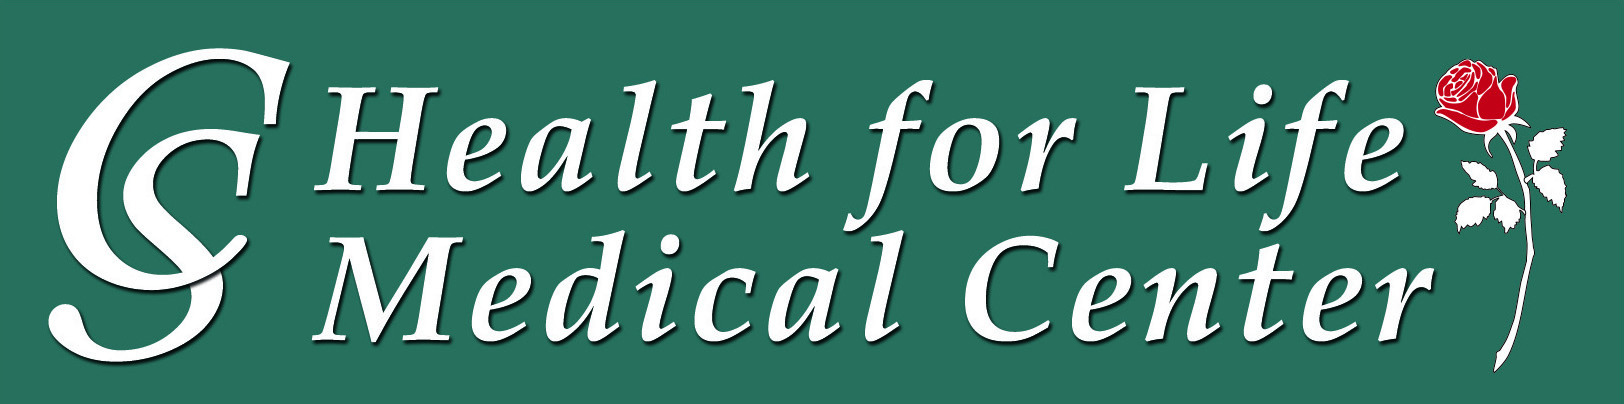 Couri & Smyth Health for Life Medical Center